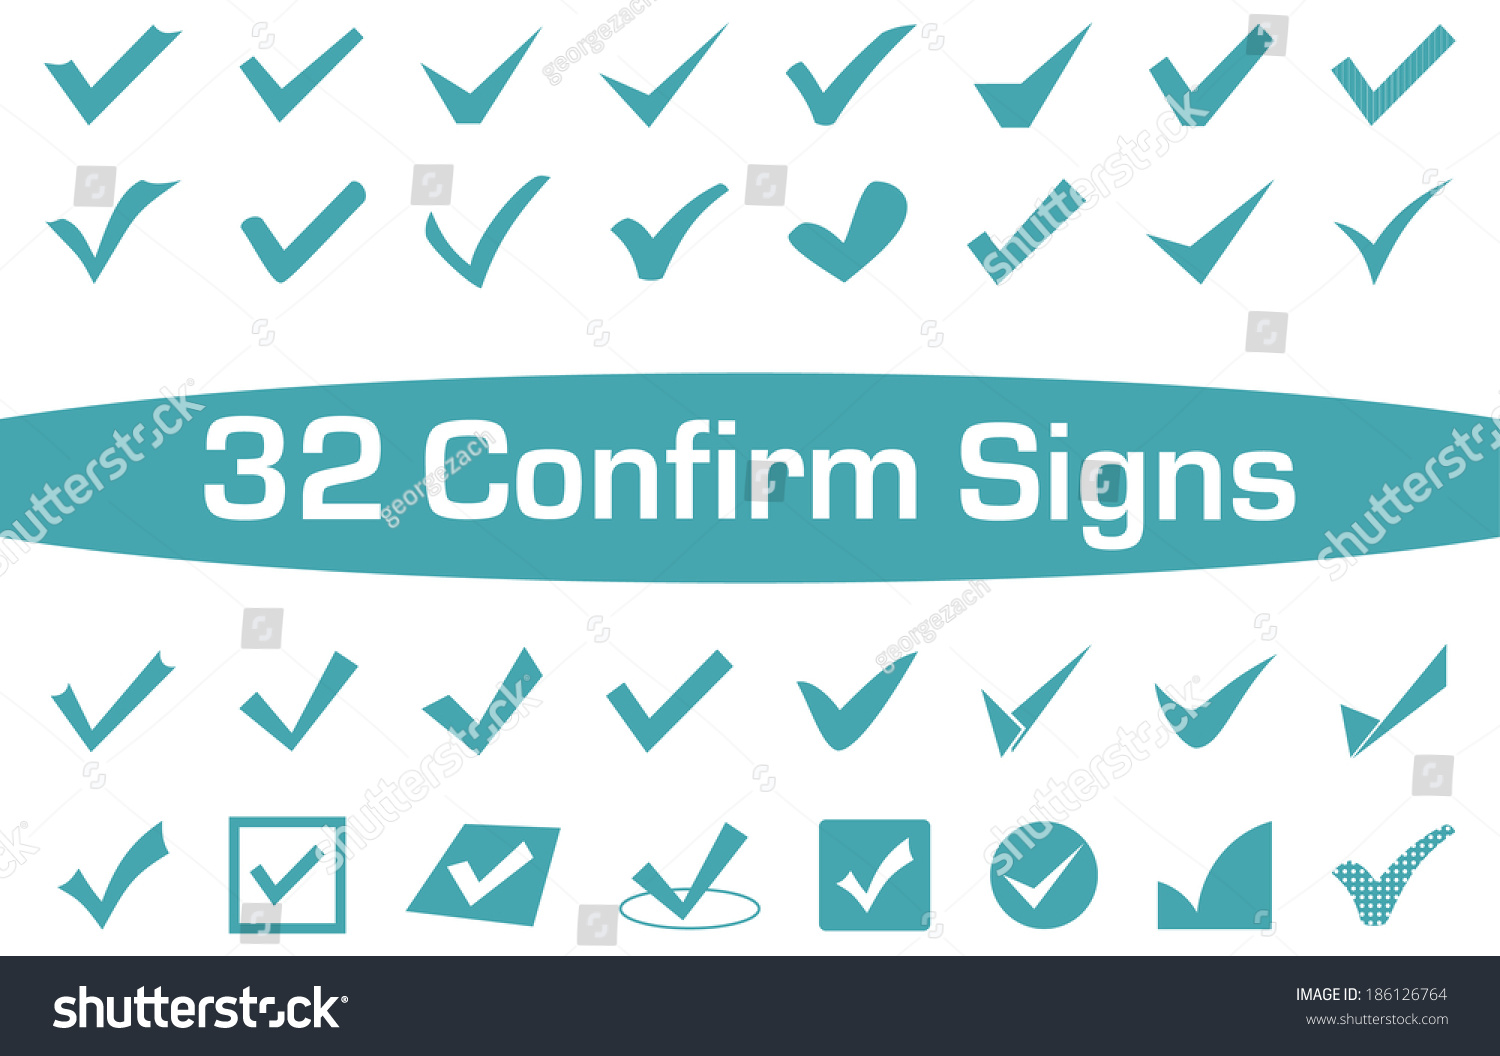 Set 32 Confirm Signs Everyday Lifes Stock Vector 186126764. Associate Degree In Engineering Online. Morris Material Handling Saint Leo University. Biogen Idec Hemophilia The Generals Insurance. Medical Equipment Labels Basic Hipaa Training. Technology Education Masters. Internal Medicine Personal Statement. How To Relieve Extreme Constipation. Simple Scheduling Software Asu Health Center